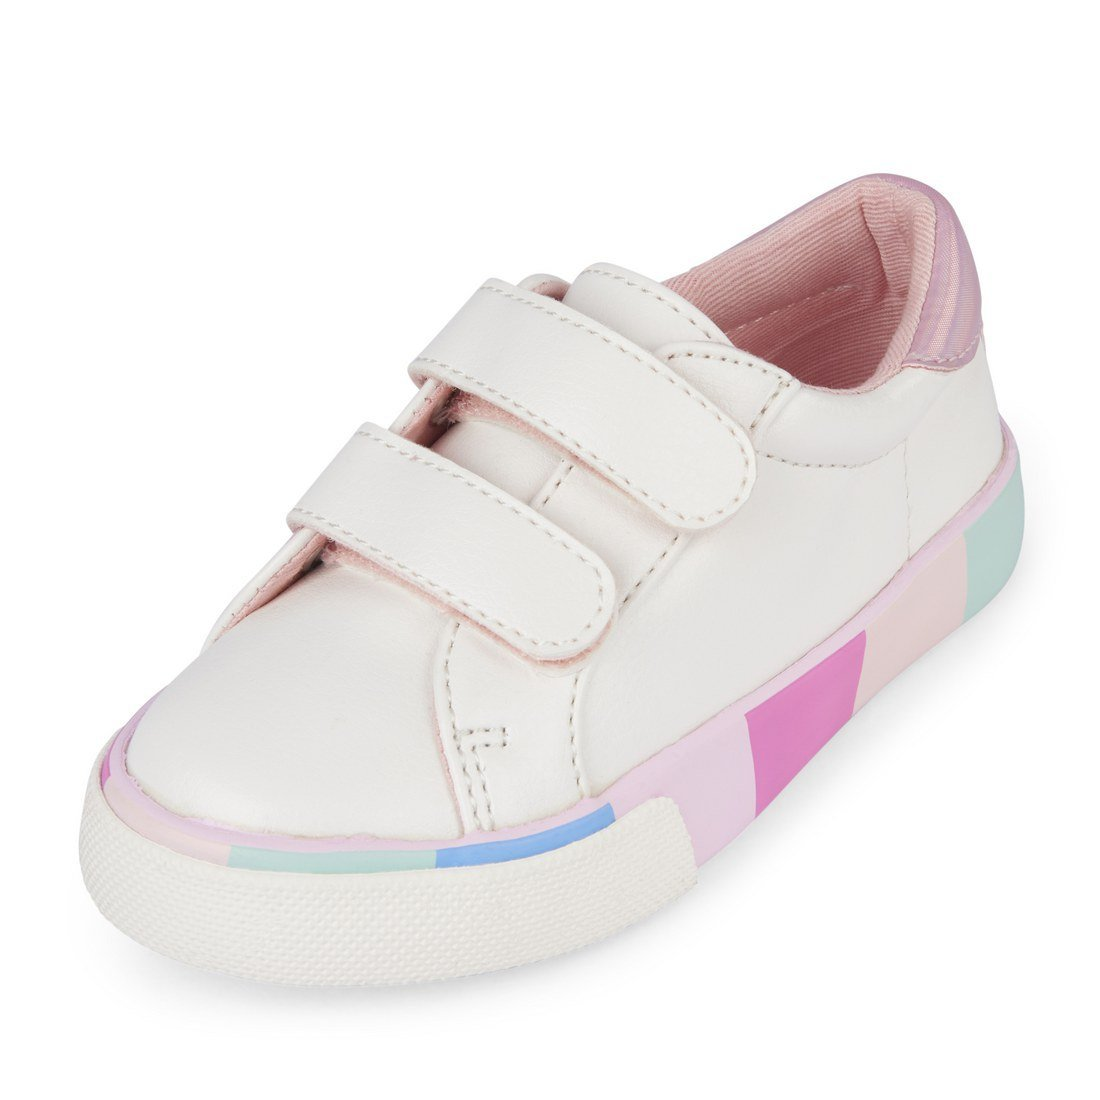 The Children's Place Girls' TG Multi Sneaker, Multi Clr, TDDLR 6 Medium US Big Kid